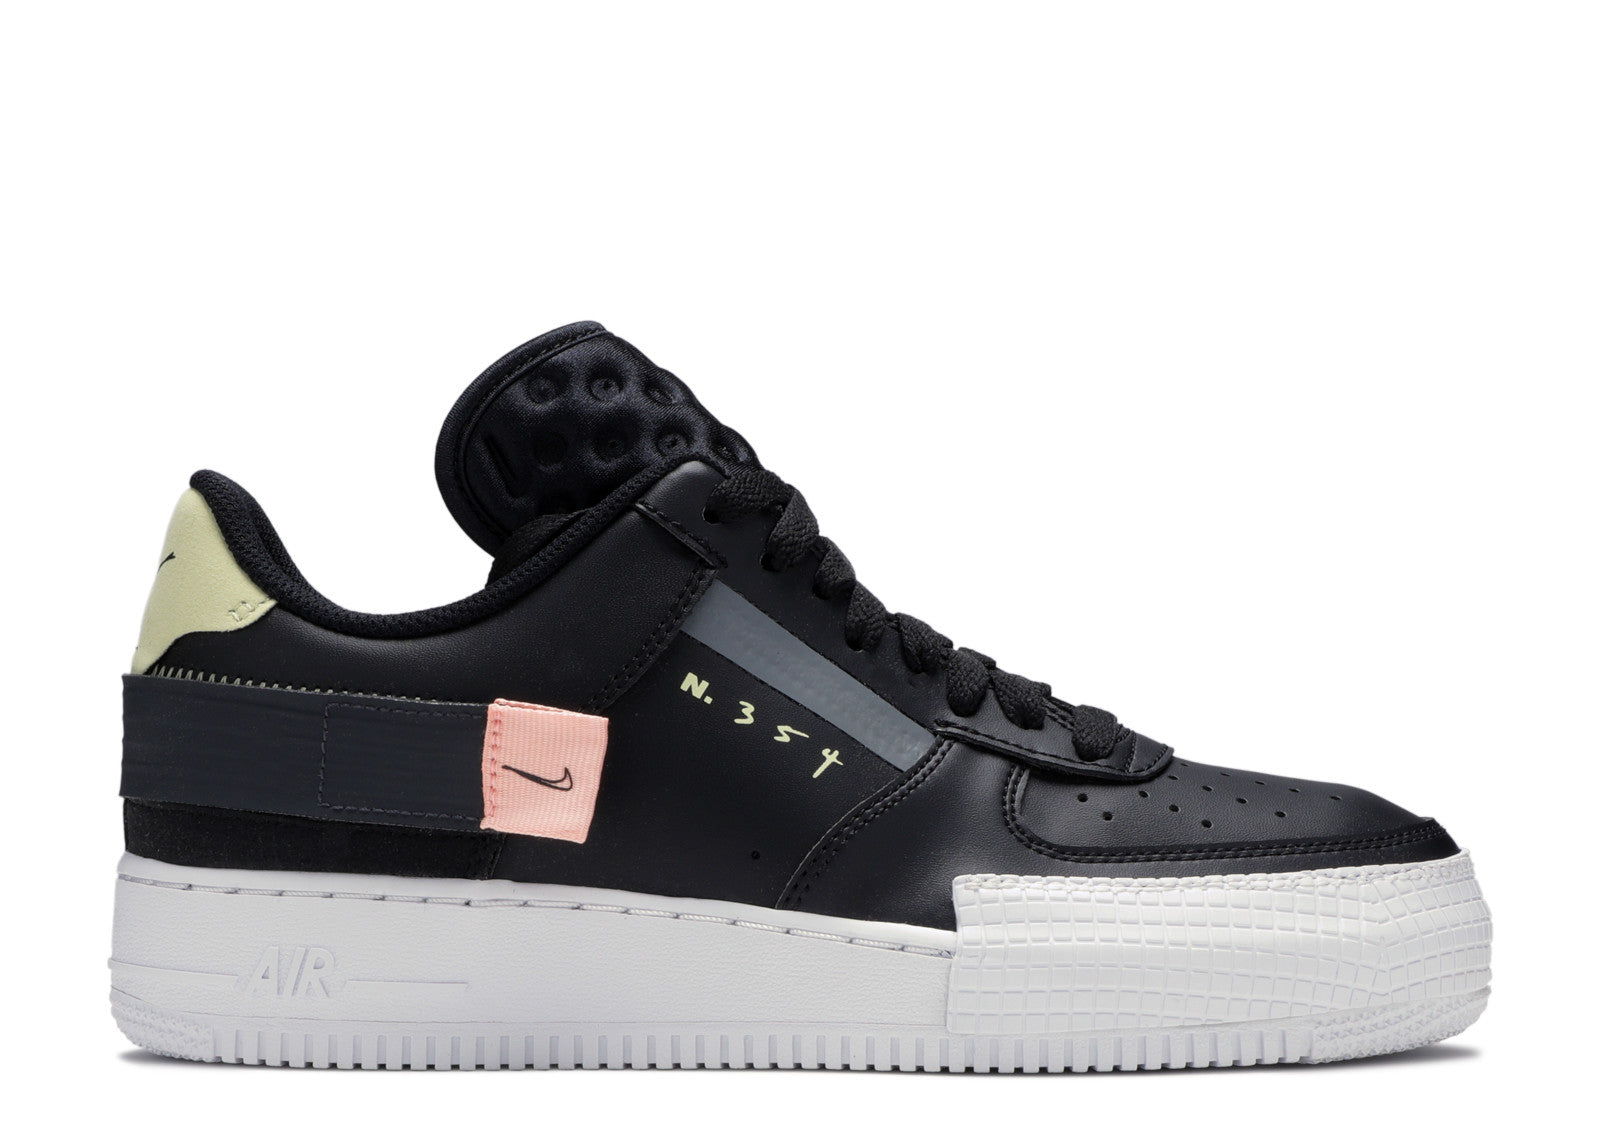 Nike Air Force 1 Low Type 'Black Pink Tint'